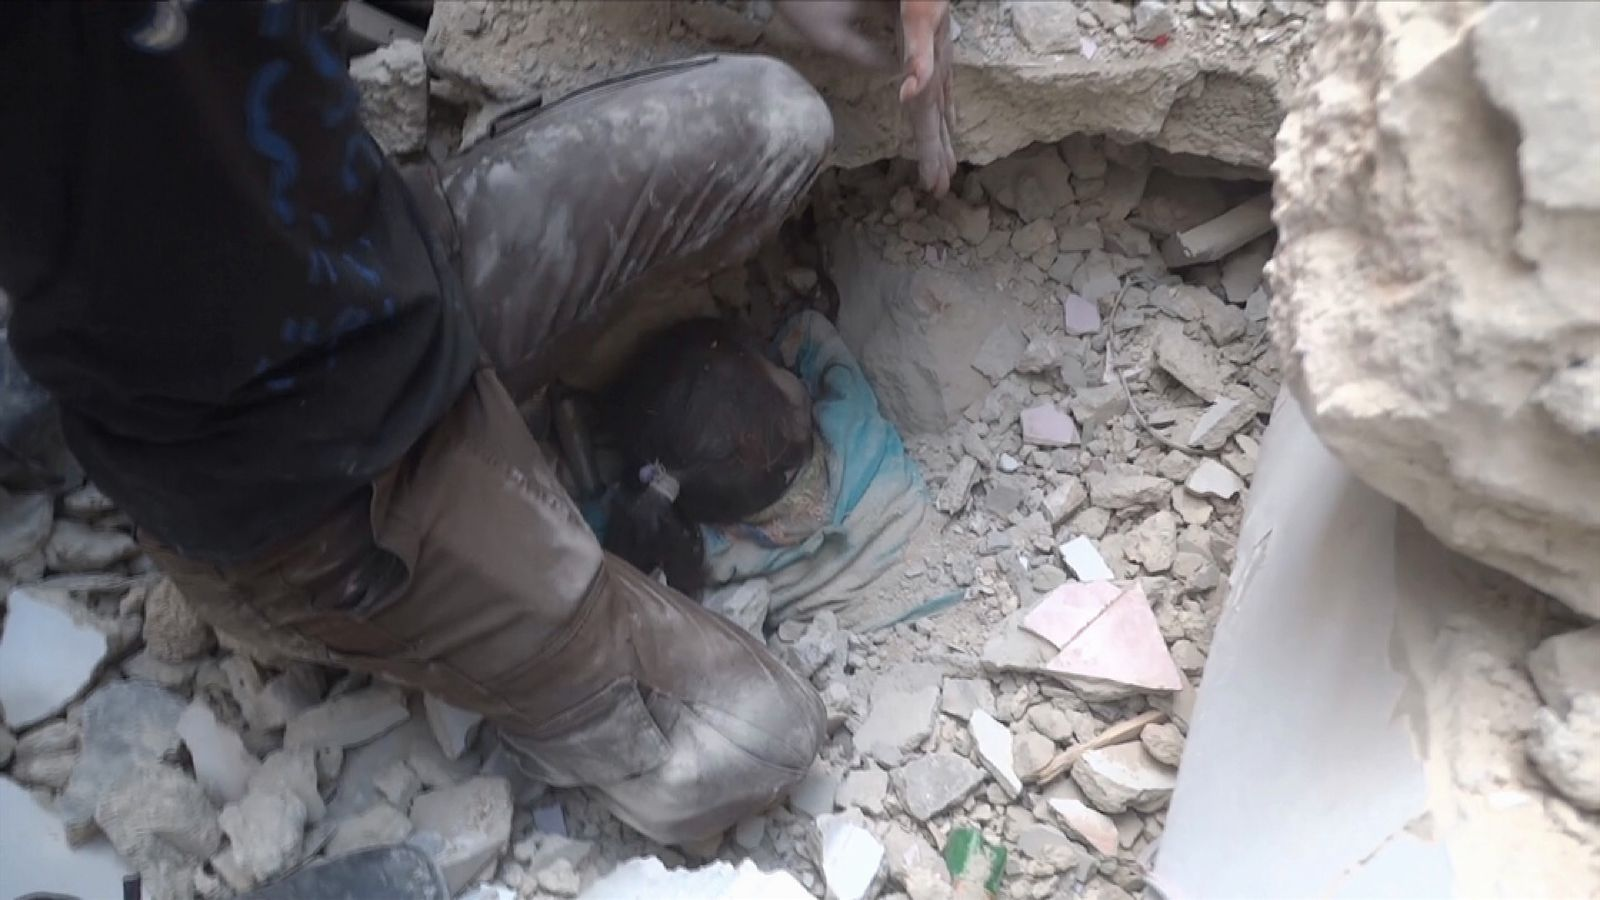 A young Syrian girl trapped in the rubble of a building in Aleppo